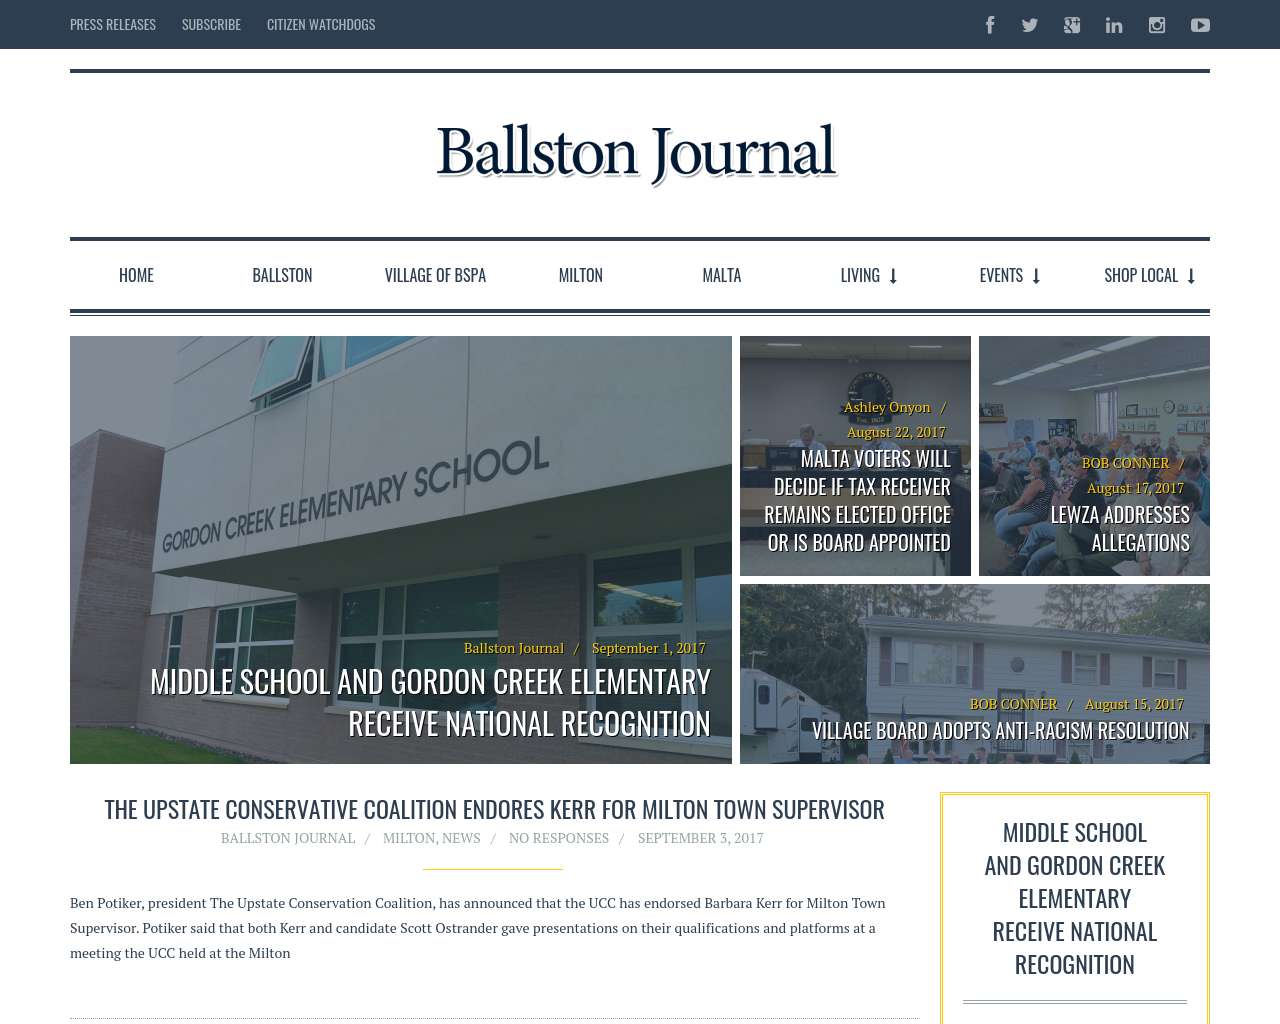 The-Ballston-Journal-Online-Advertising-Reviews-Pricing